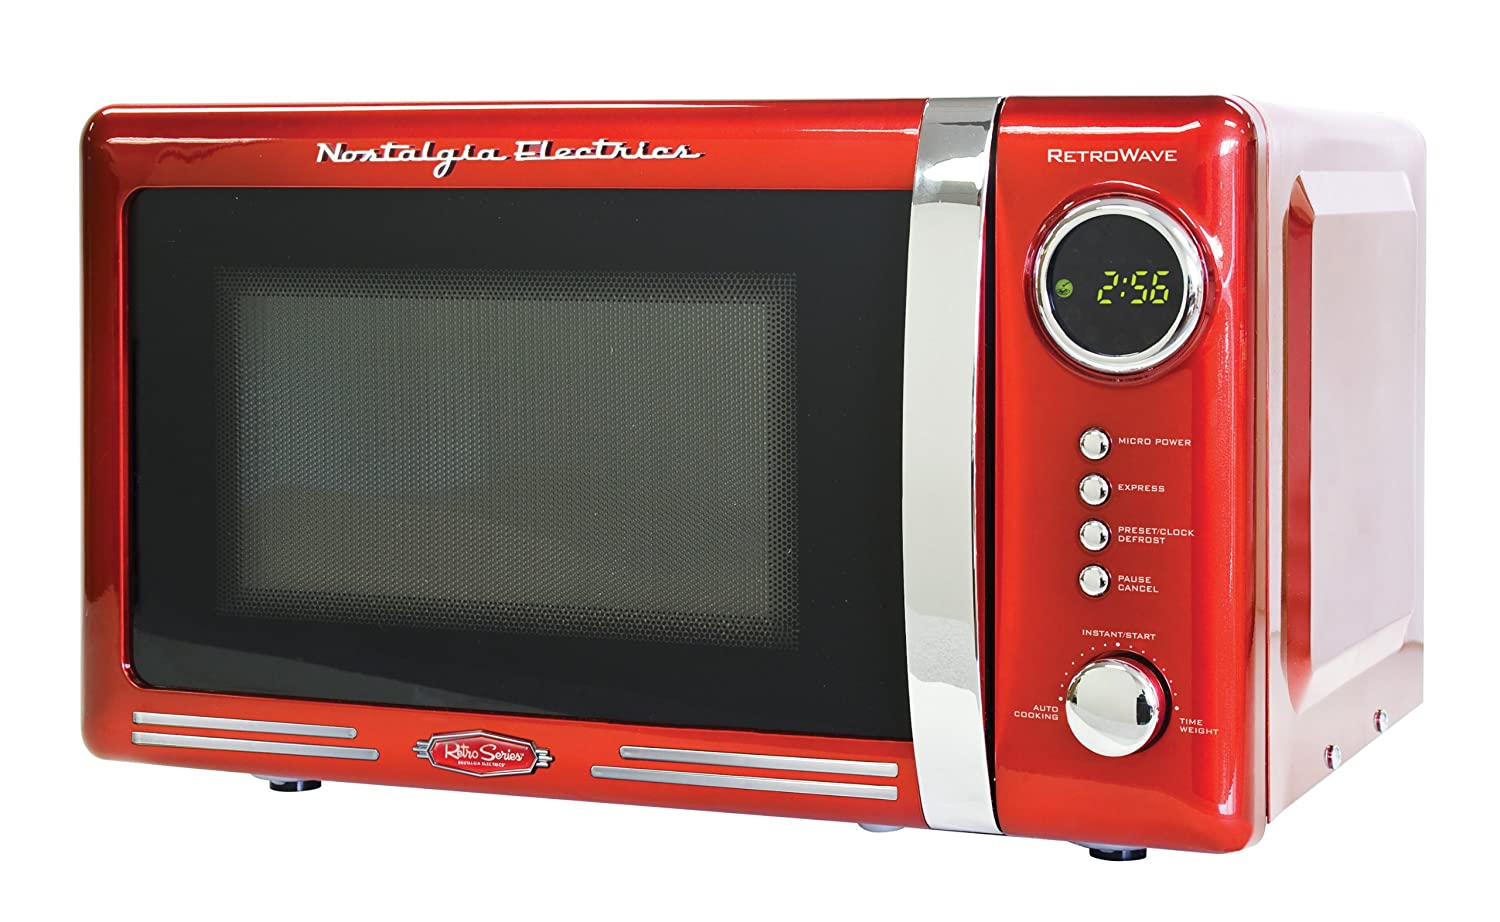 Nostalgia Electrics RMO770RED Countertop